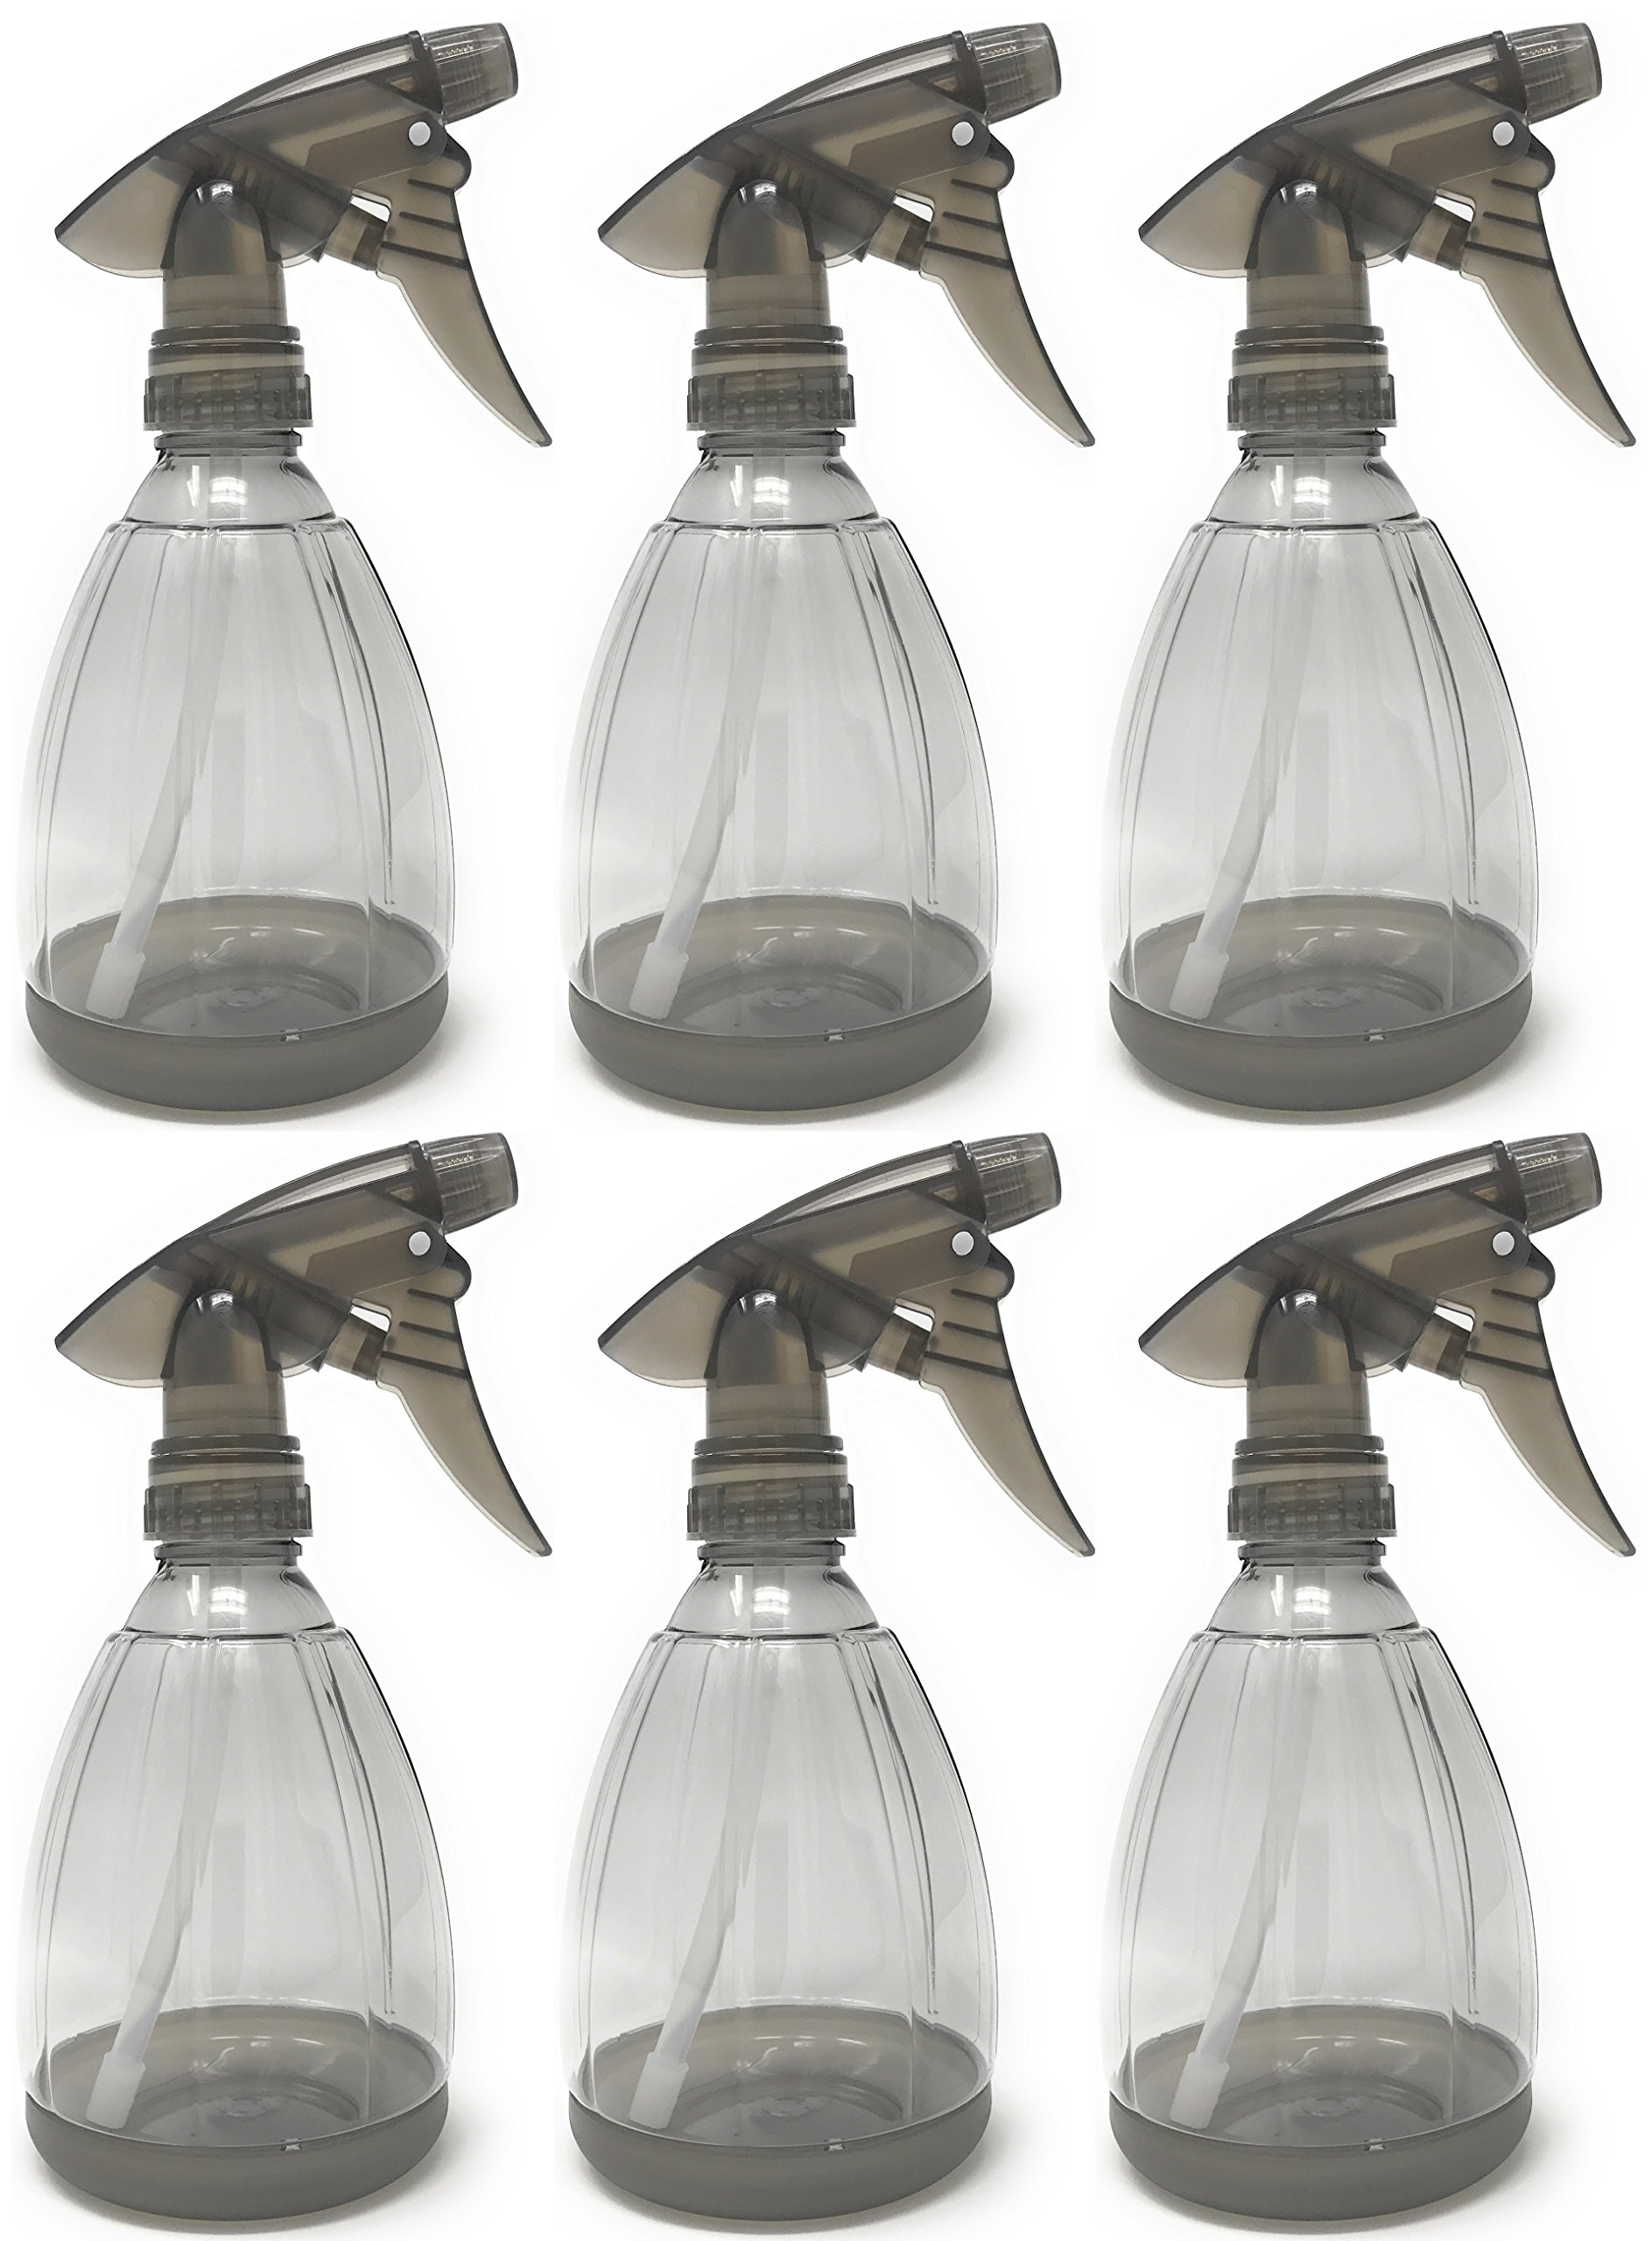 Empty Plastic Spray Bottle 12 Ounce, Smoke Grey, Adjustable Head Sprayer from Fine to Stream (Pack of 6) by Bar5F